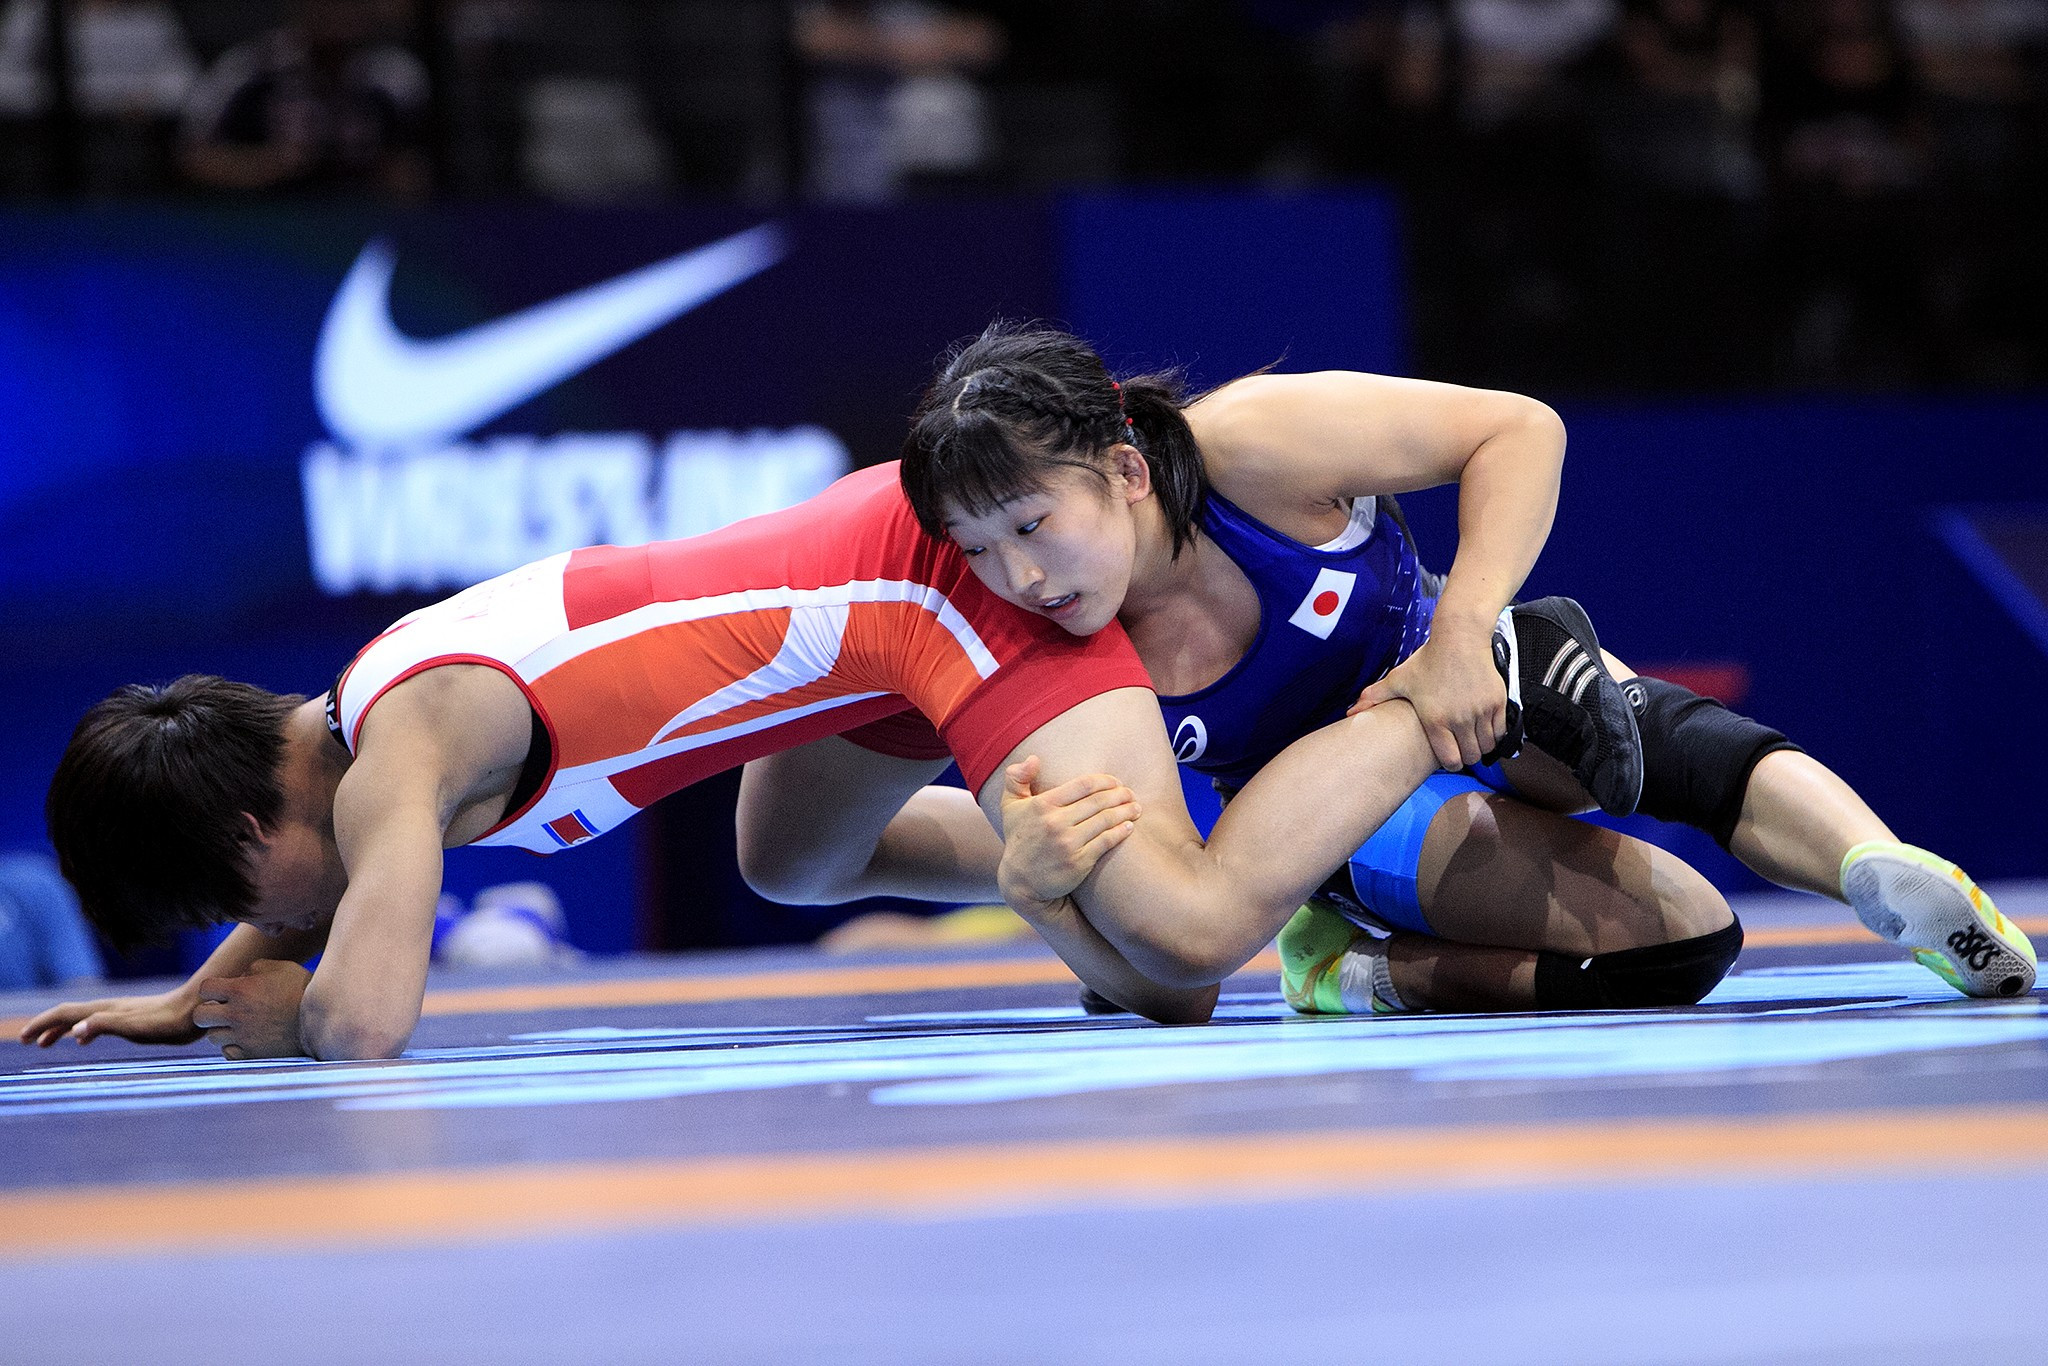 Yui Susaki topped the podium in the 48kg category to claim Japan's second gold medal of the day ©UWW